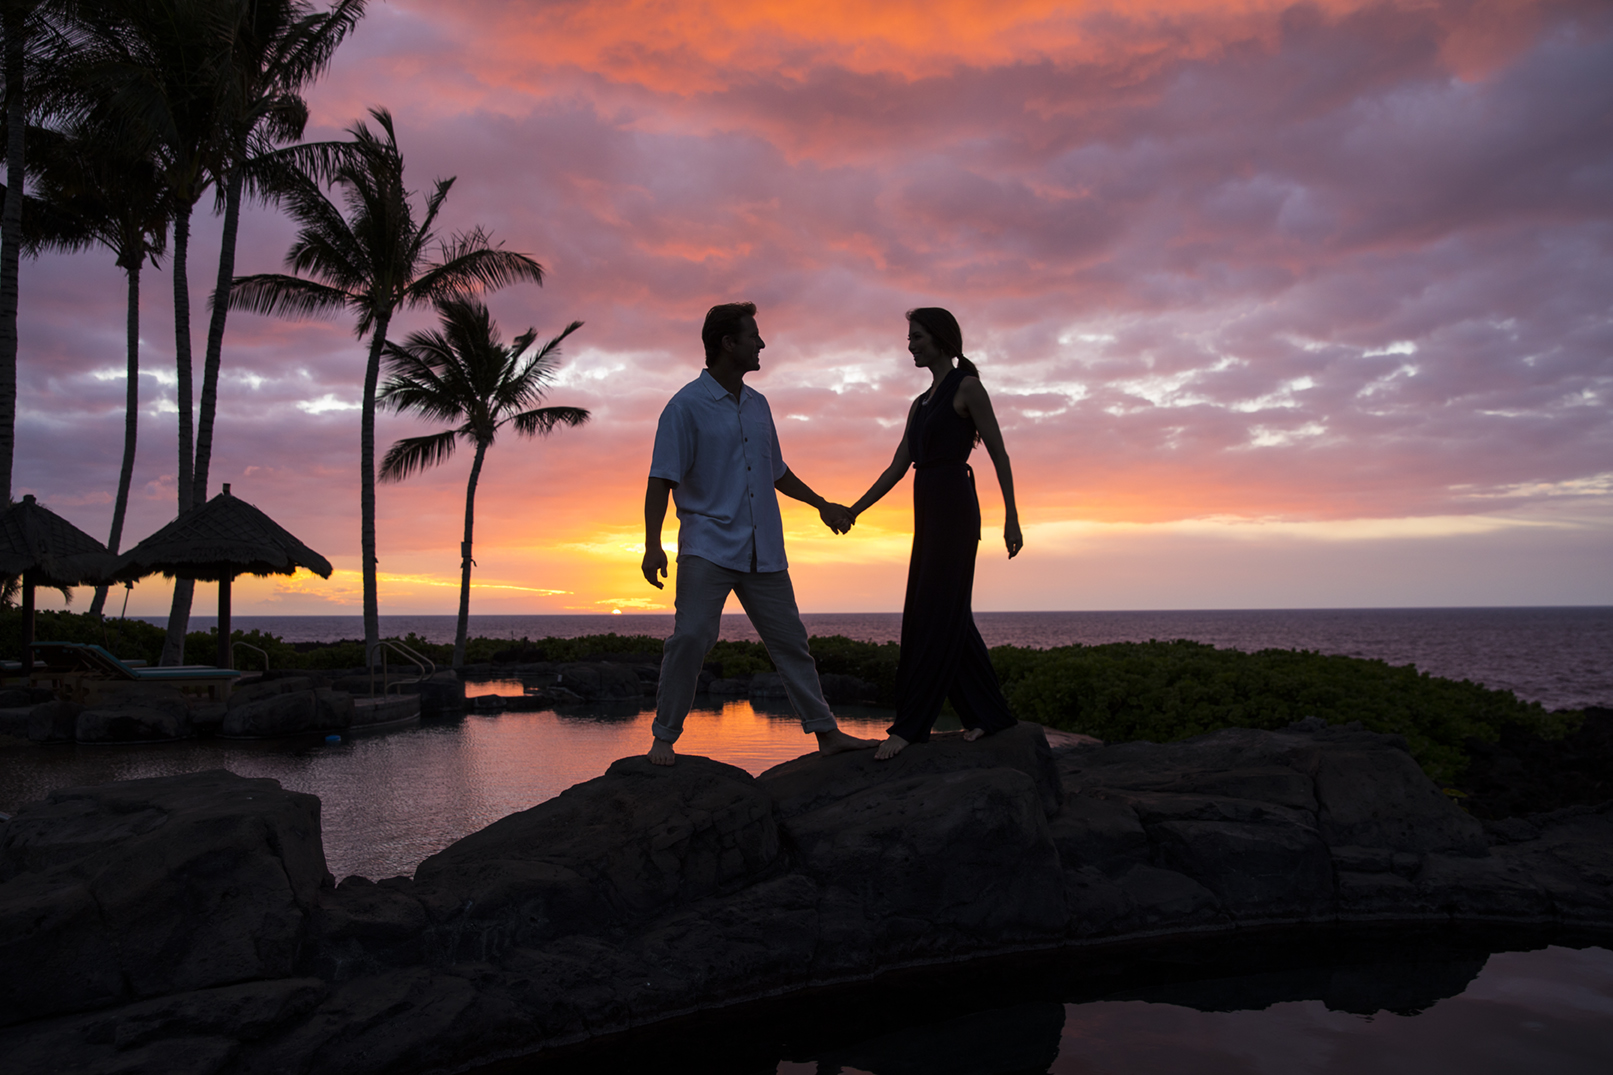 The North Kohala Coast is filled with romantic spots for couples searching for a secluded beach, a romantic oceanside dinner, or those looking for adventure.